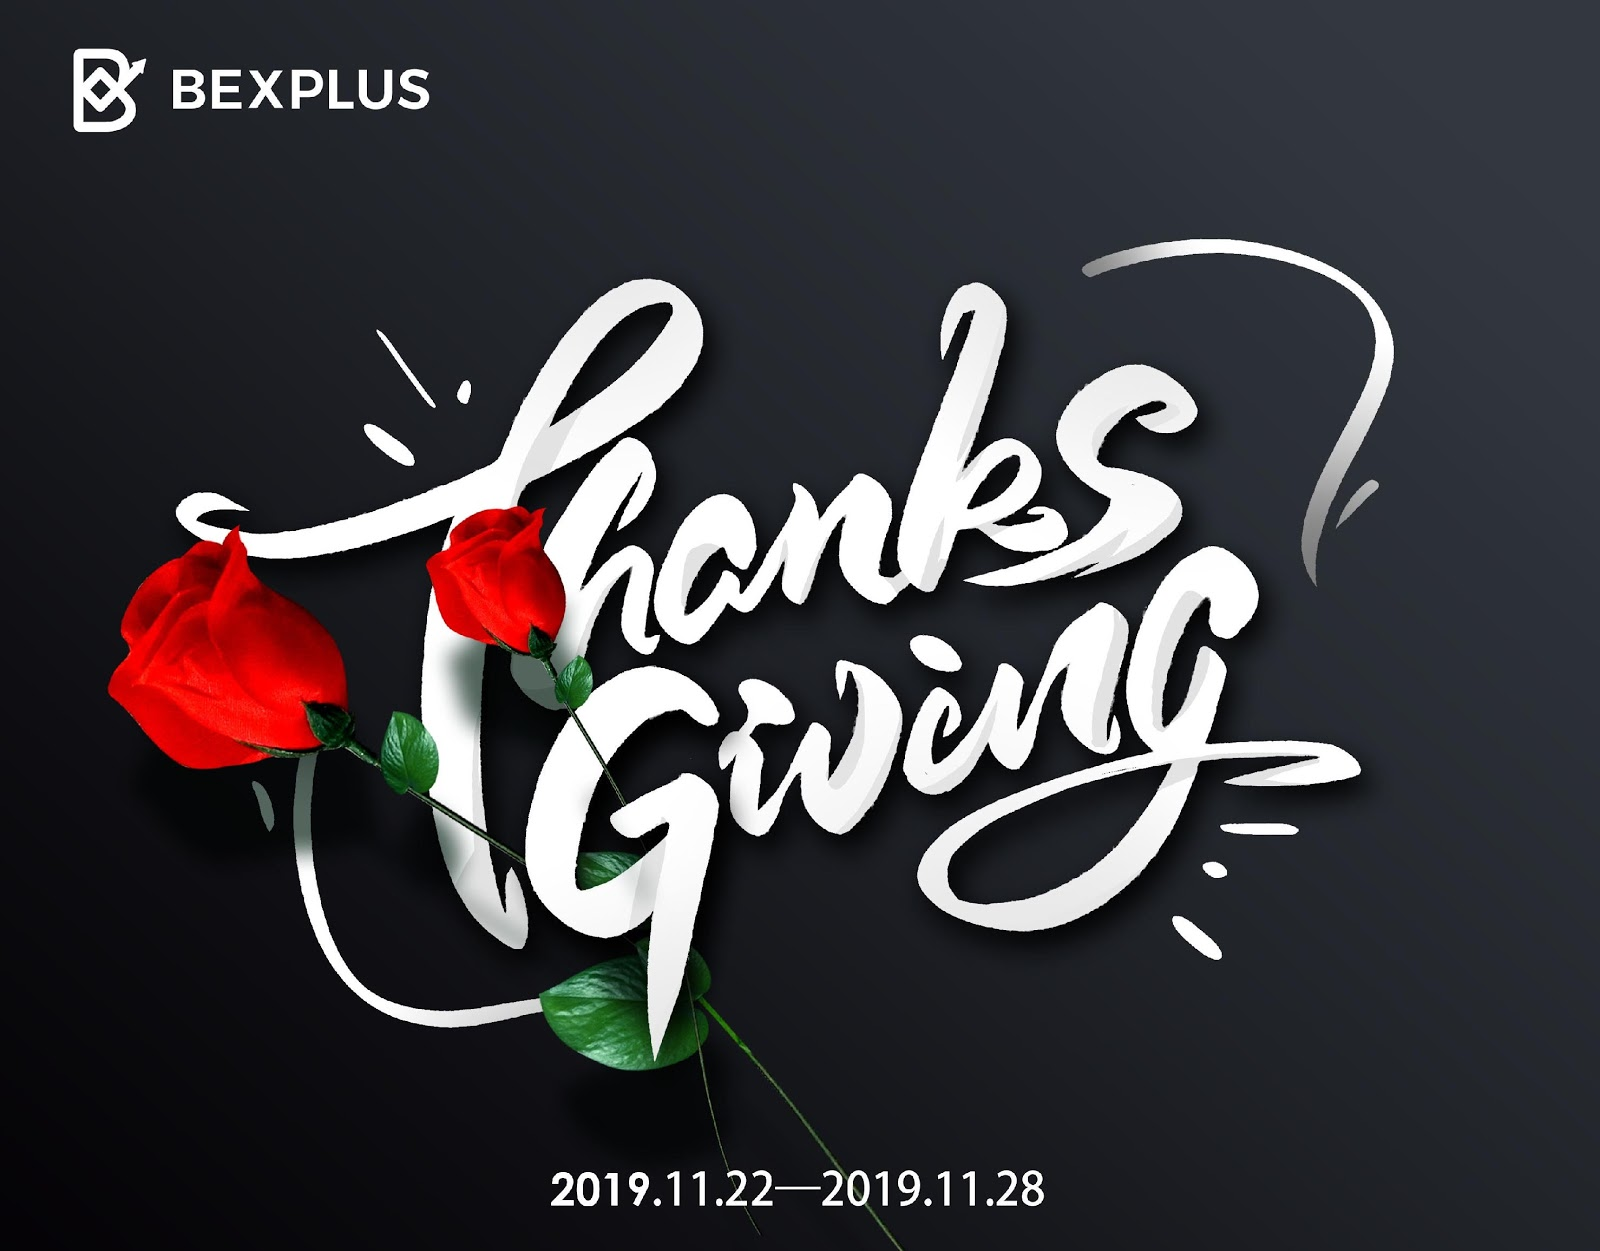 Bexplus - The Best Thing to Share with Your Family on Thanksgiving